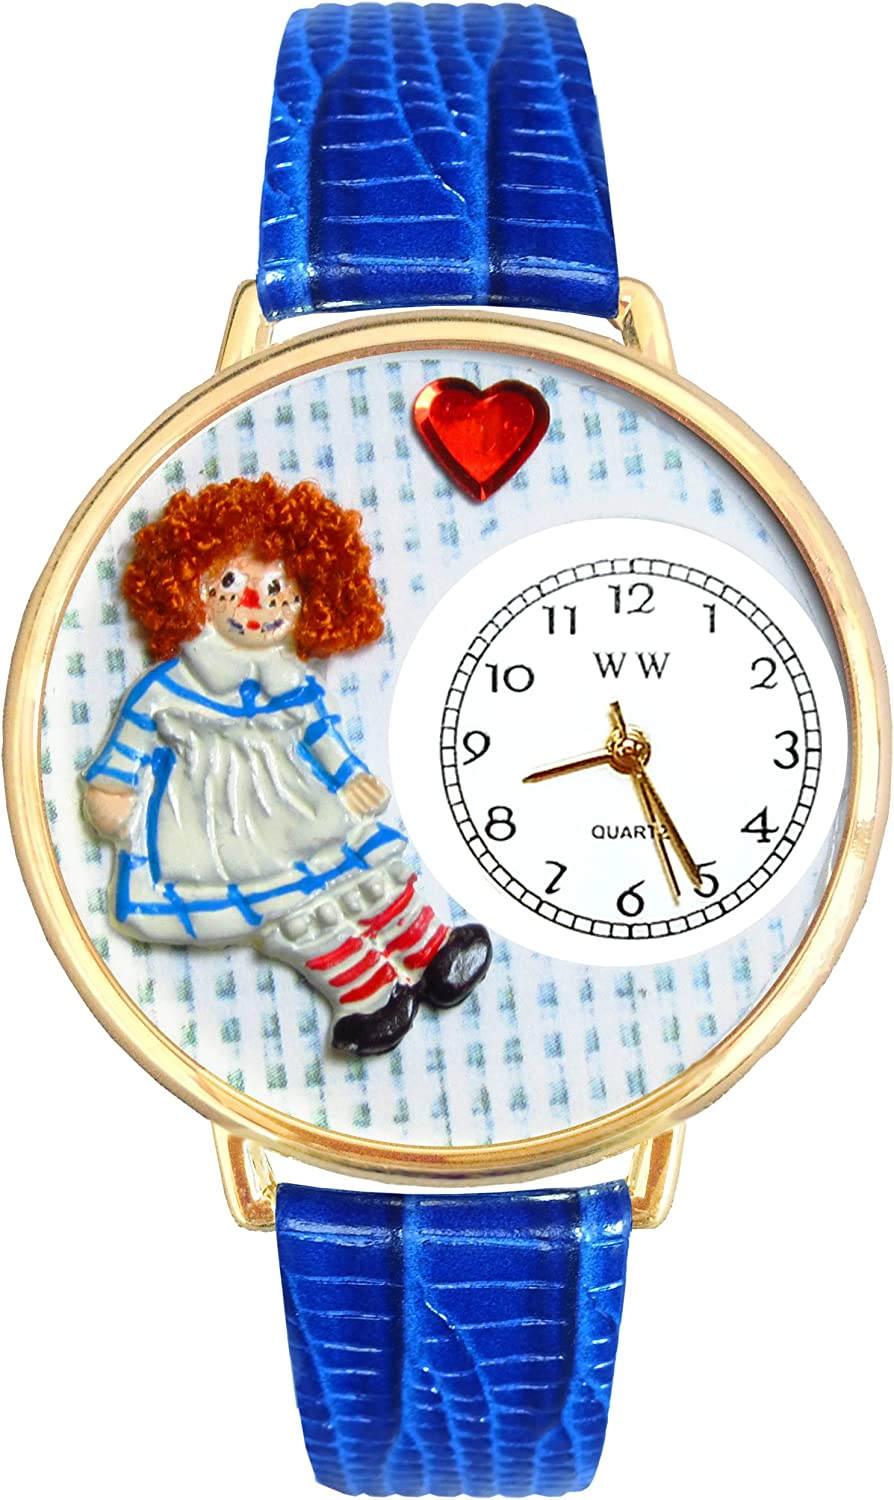 Vintage Raggedy Ann Royal Blue Leather and Goldtone Watch WG-G0220004